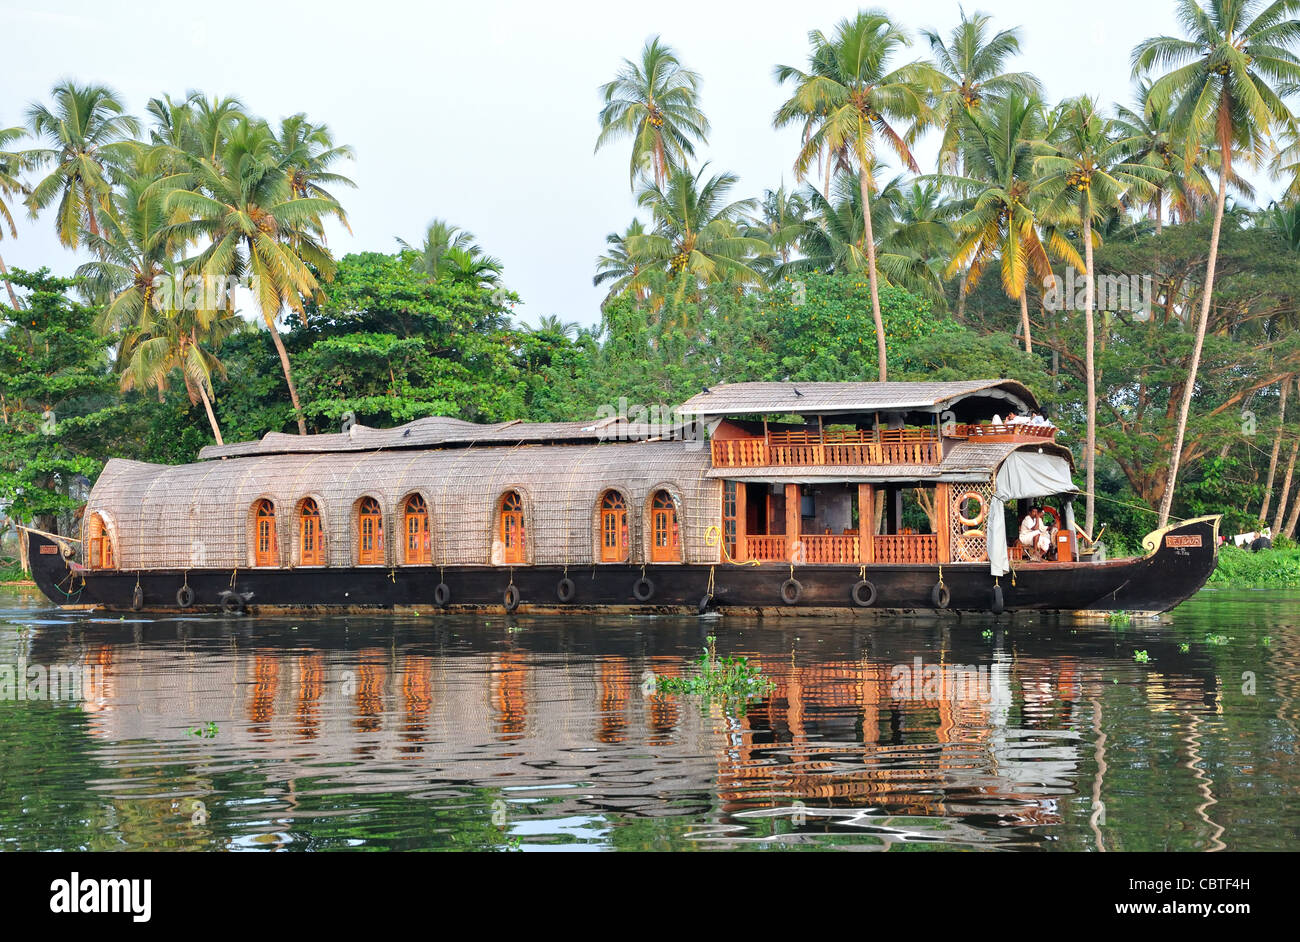 Waterscape in Kerala, India, - Stock Image